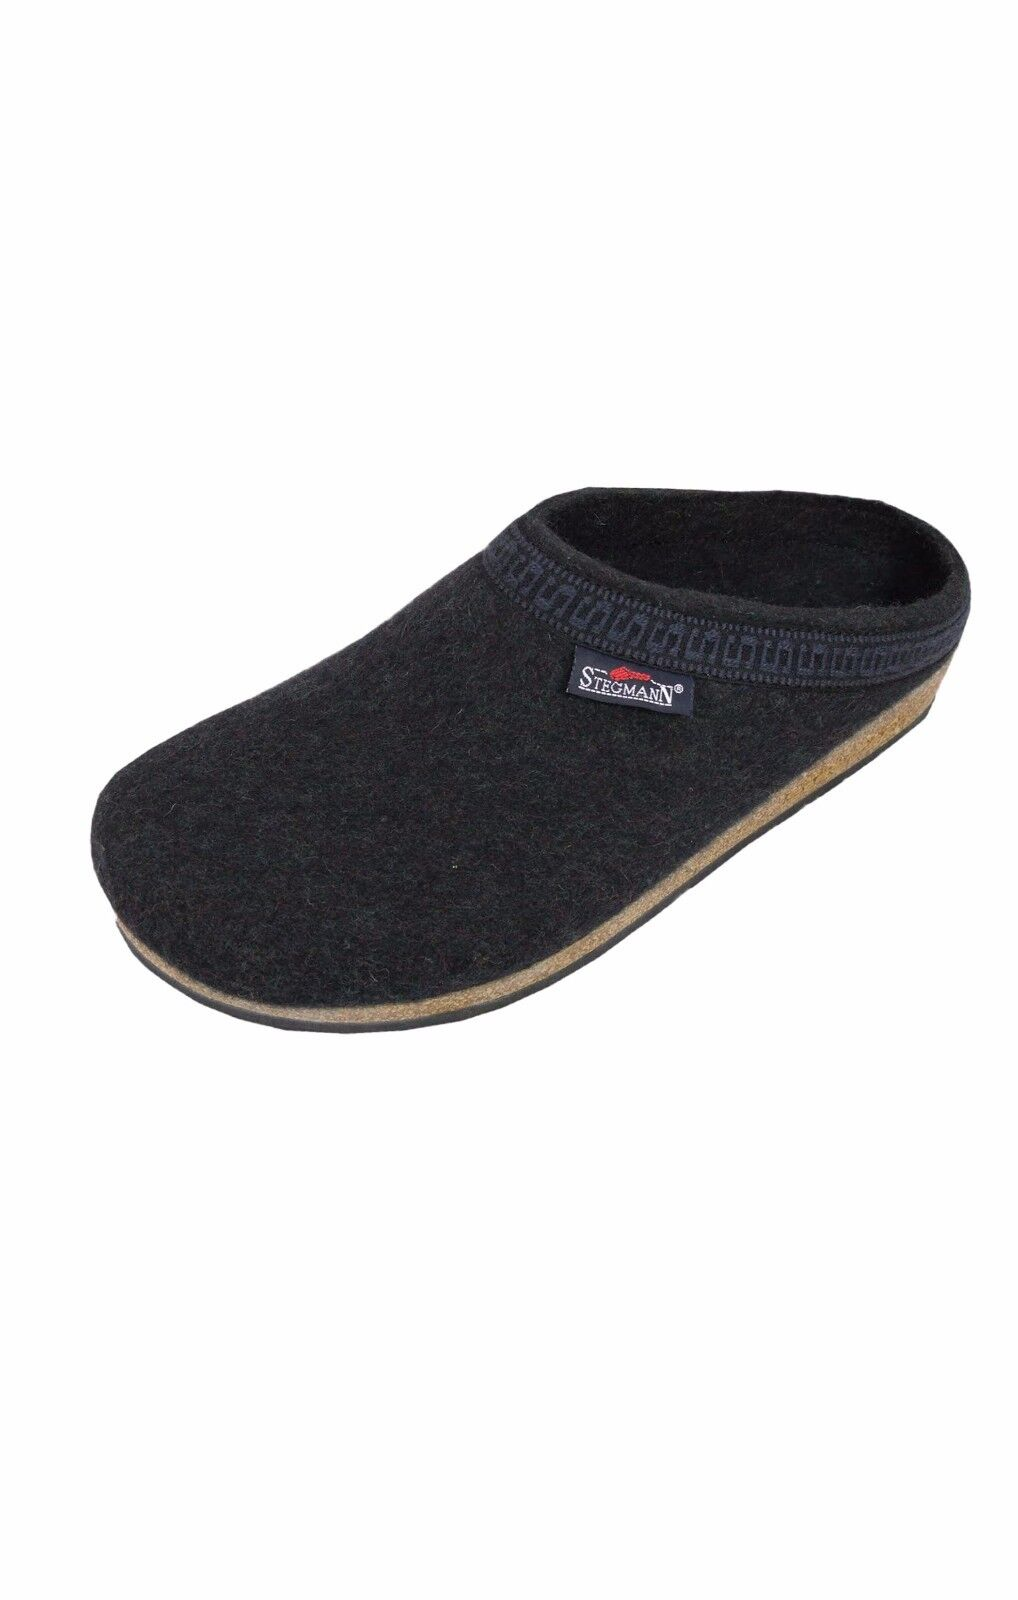 Stegmann Men's Wool Clog - M108 Graphite